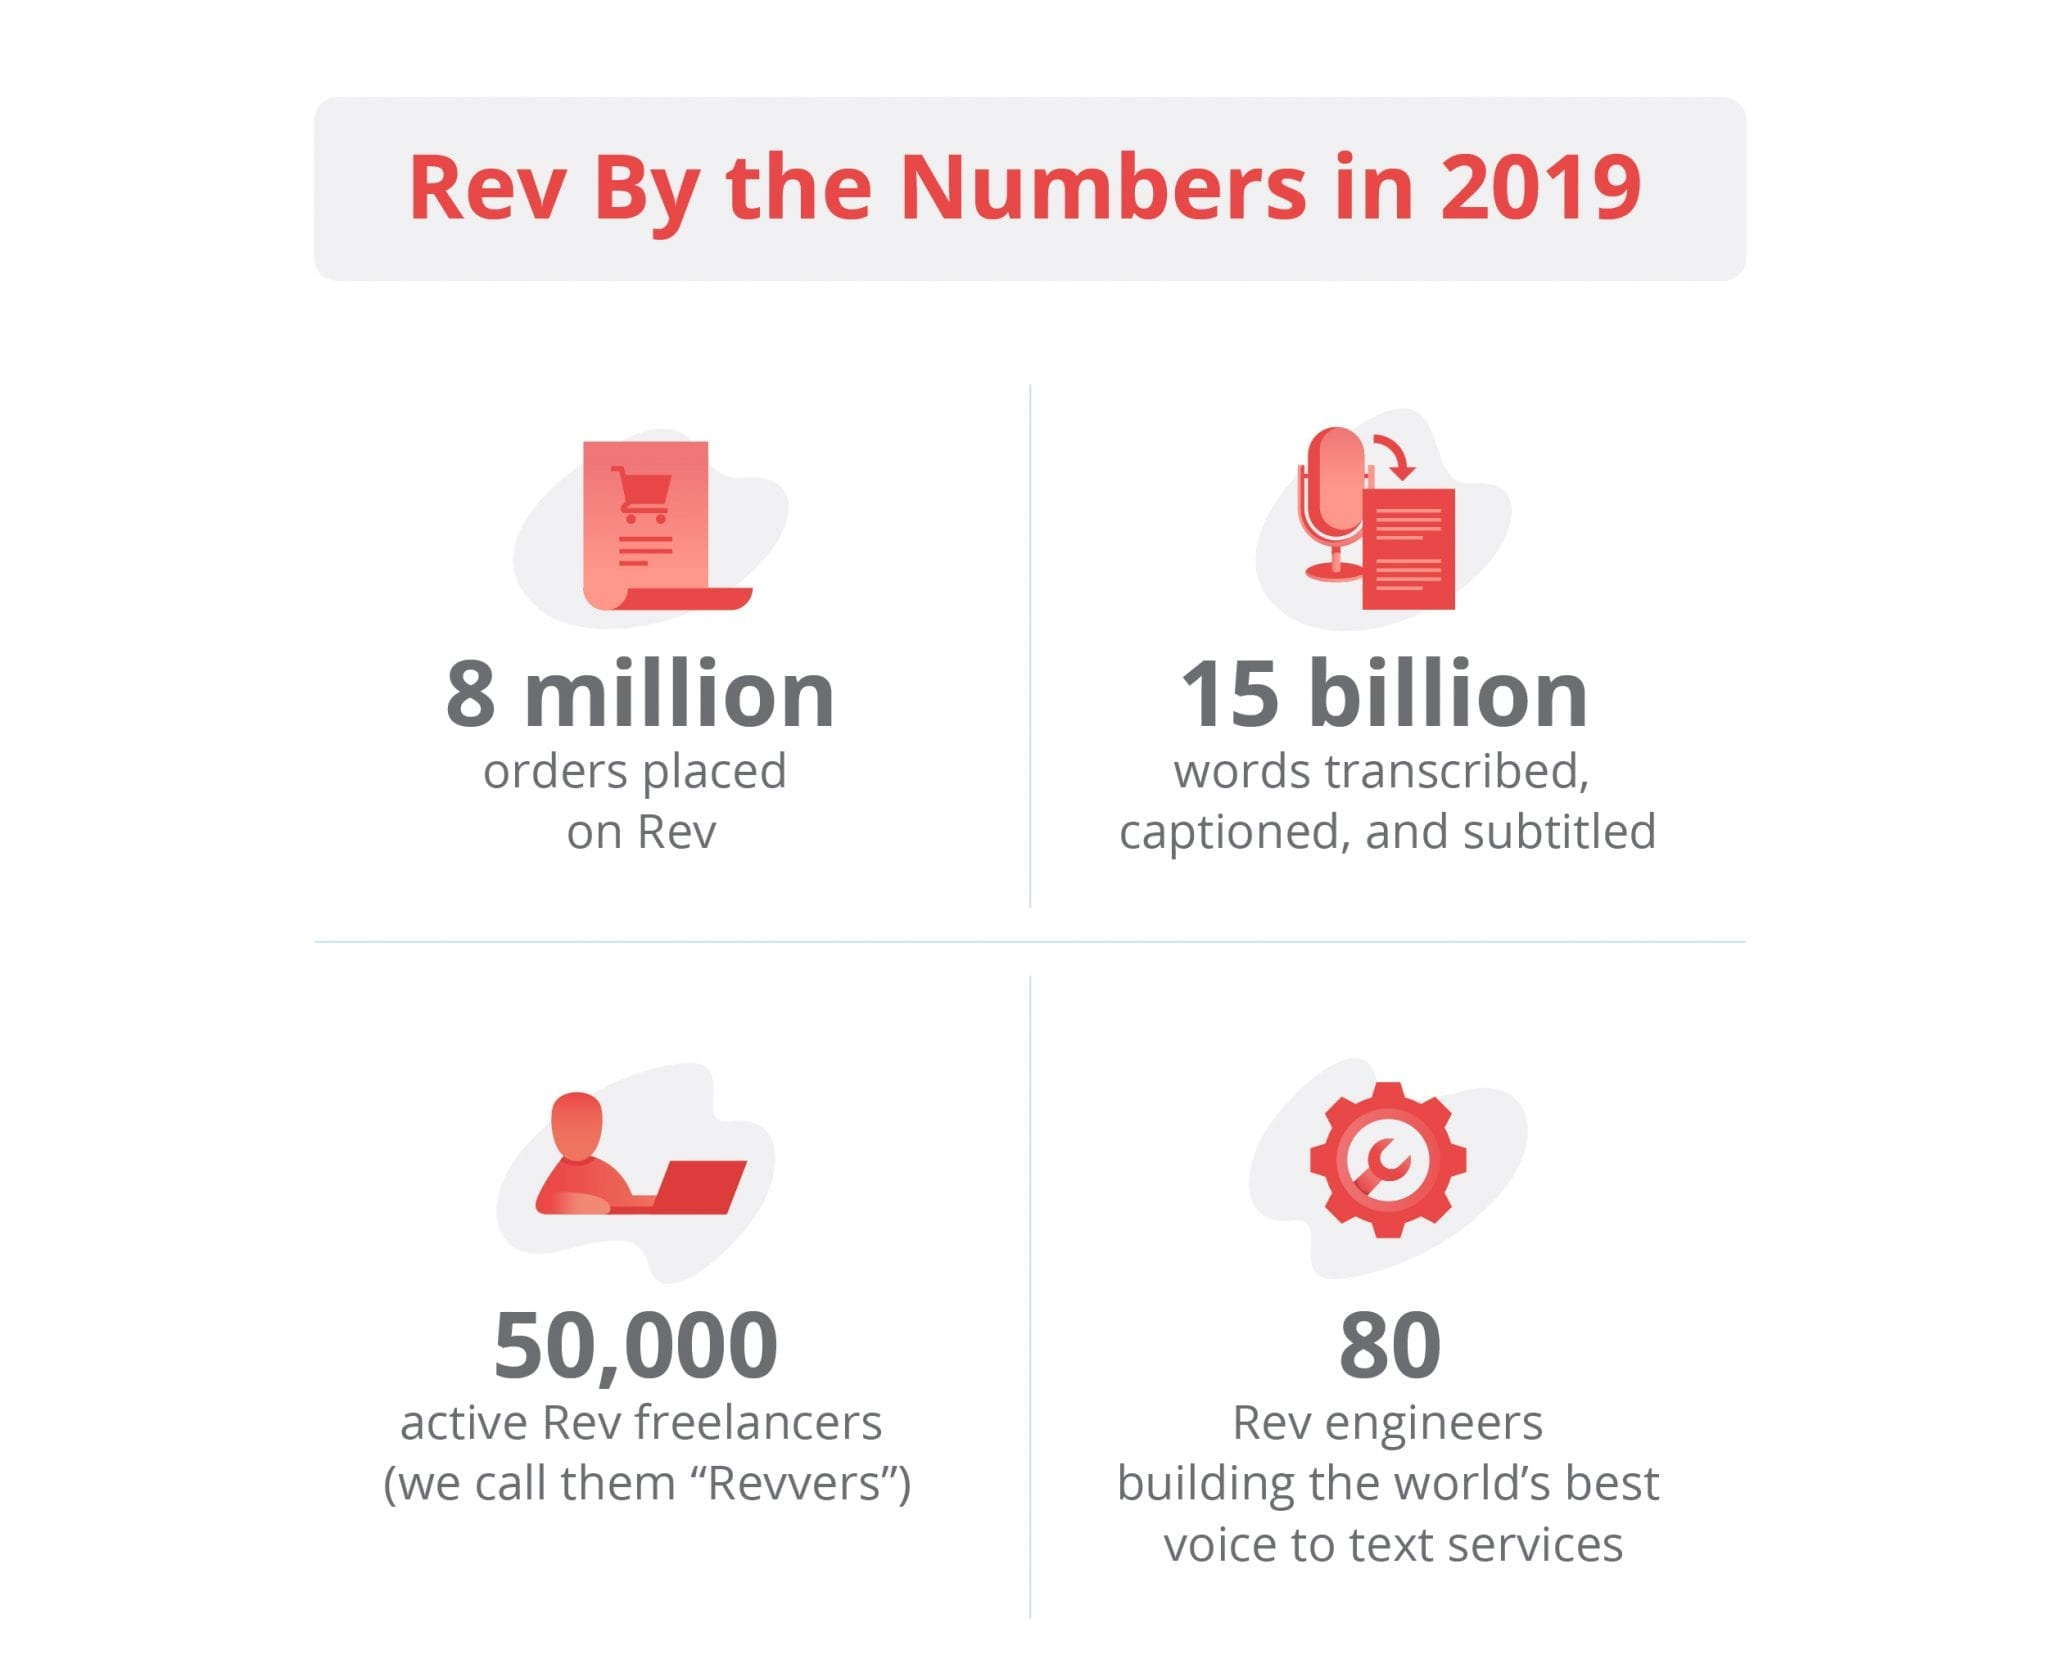 Rev by the Numbers YER Post 2019